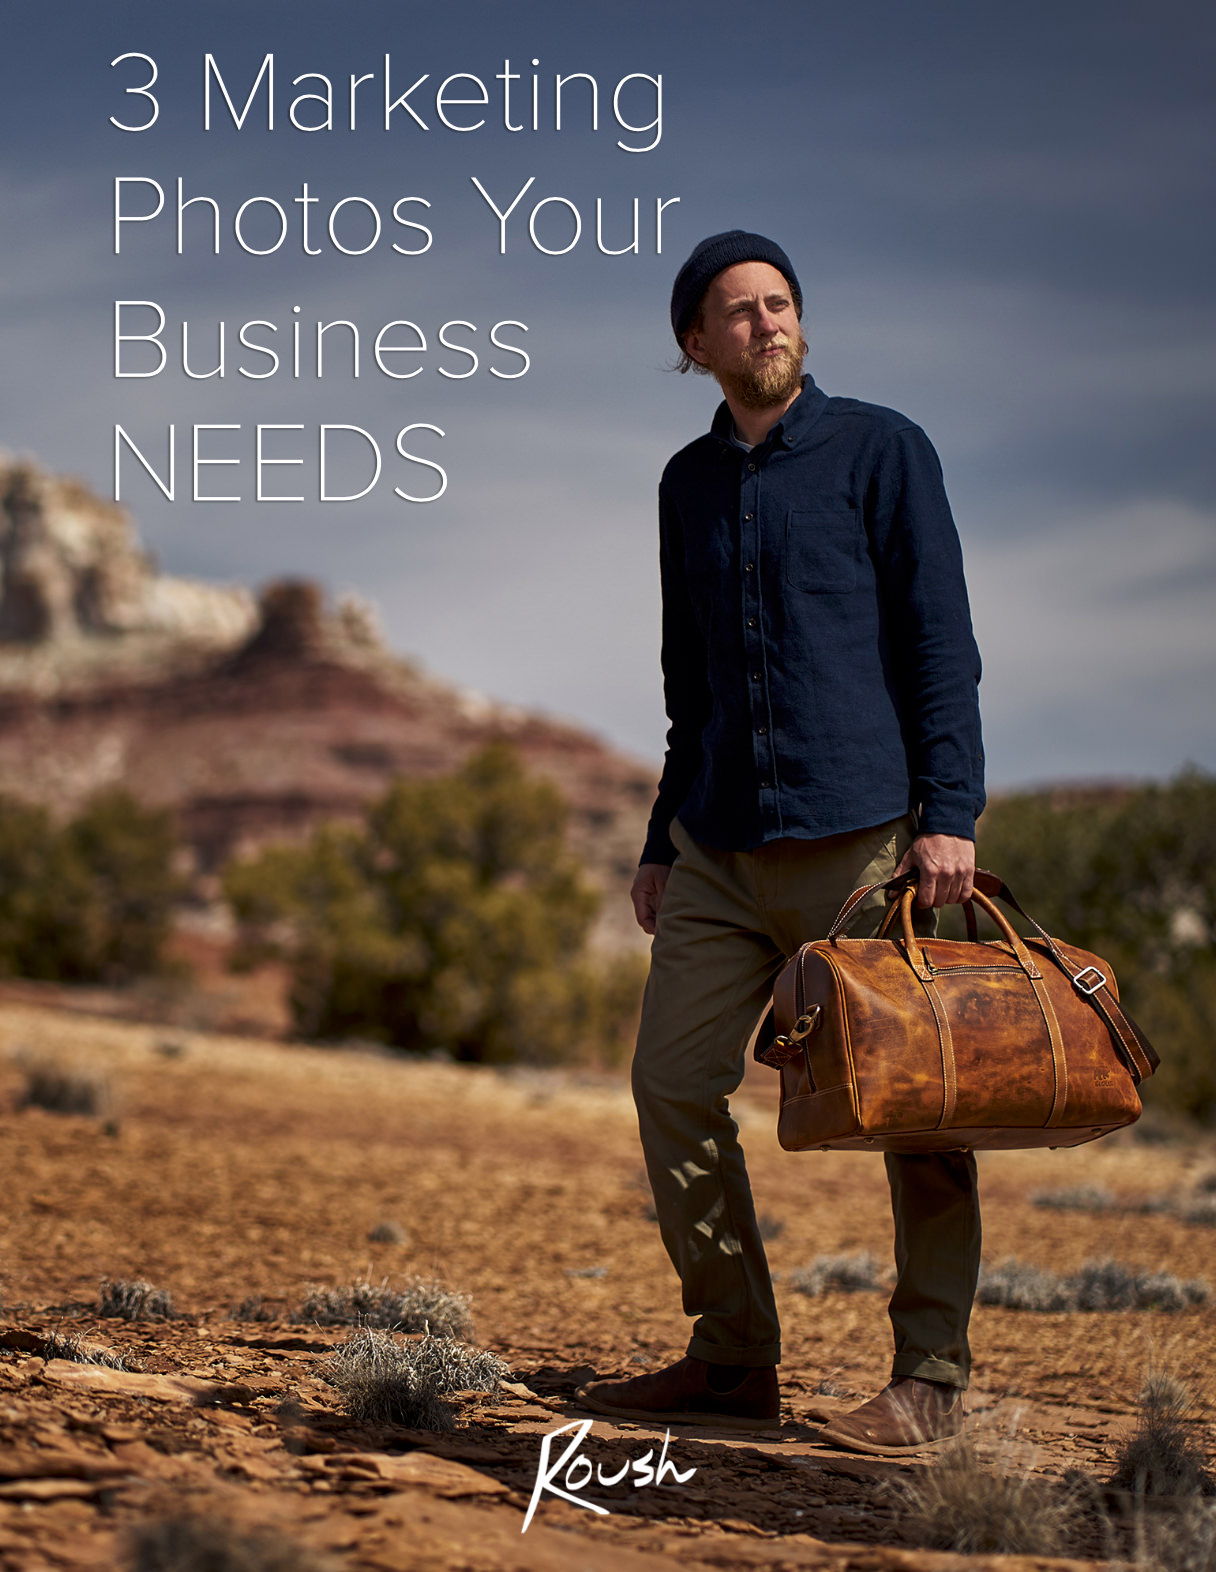 Find out the 3 photos you NEED to grow your brand image, stand out from the competition, and make a great first impression. Nick Roush Photography - small business commercial photographer.